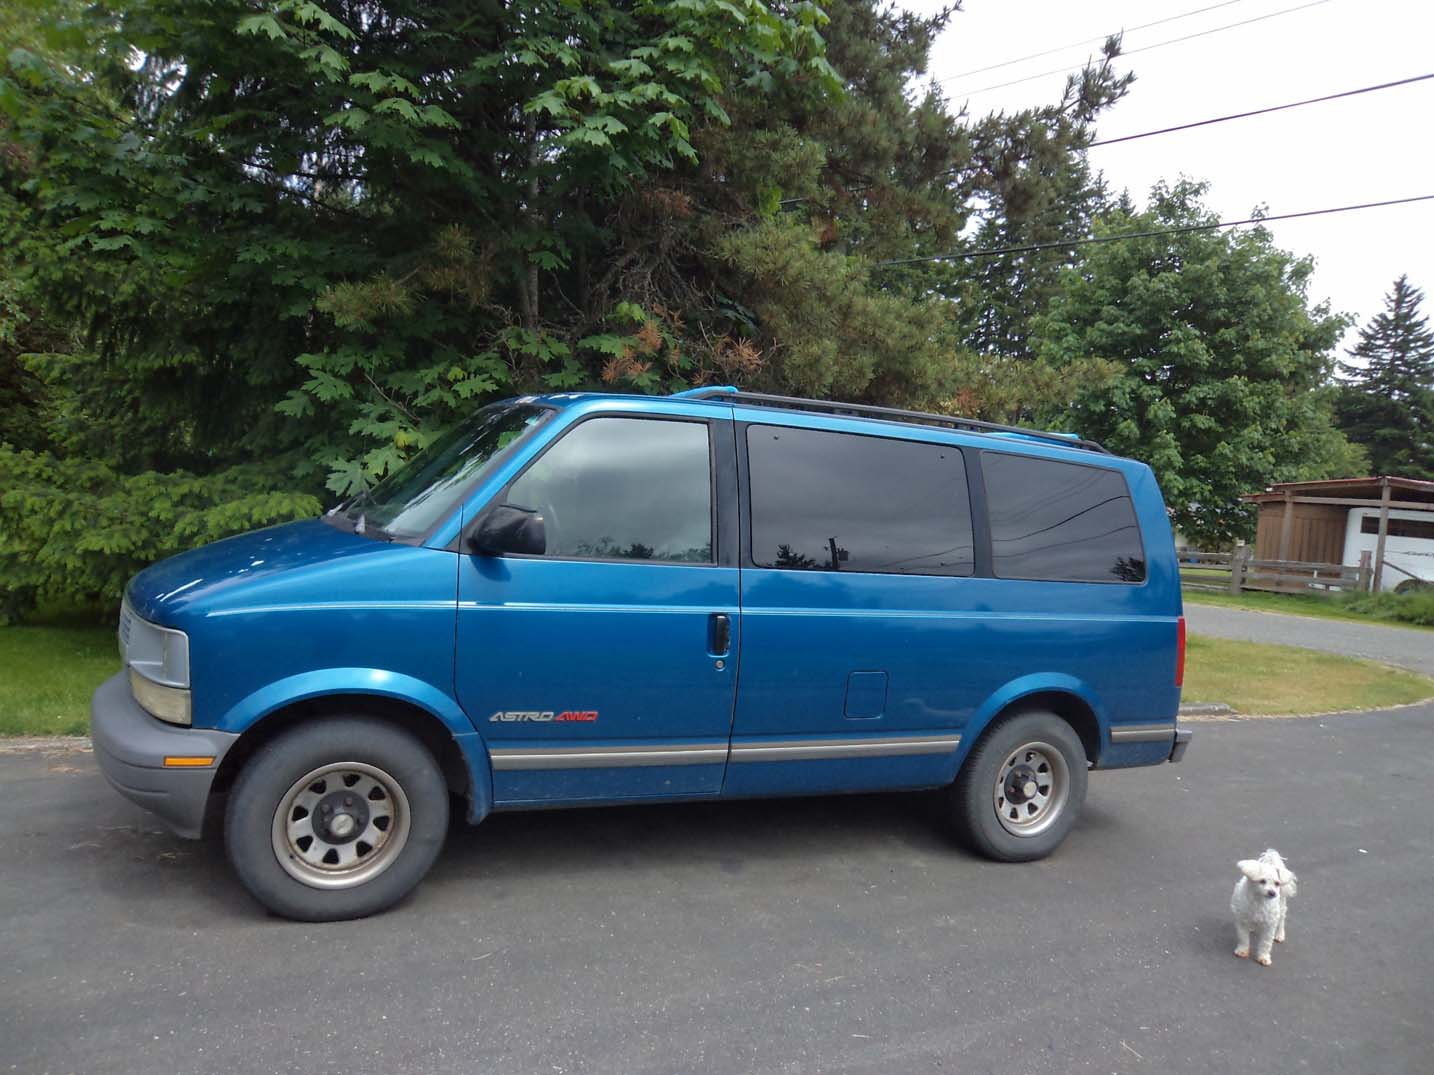 https://offtracktravel.ca/wp-content/uploads/2012/09/Astro-Van-ConversionConstruction-Update-2.png